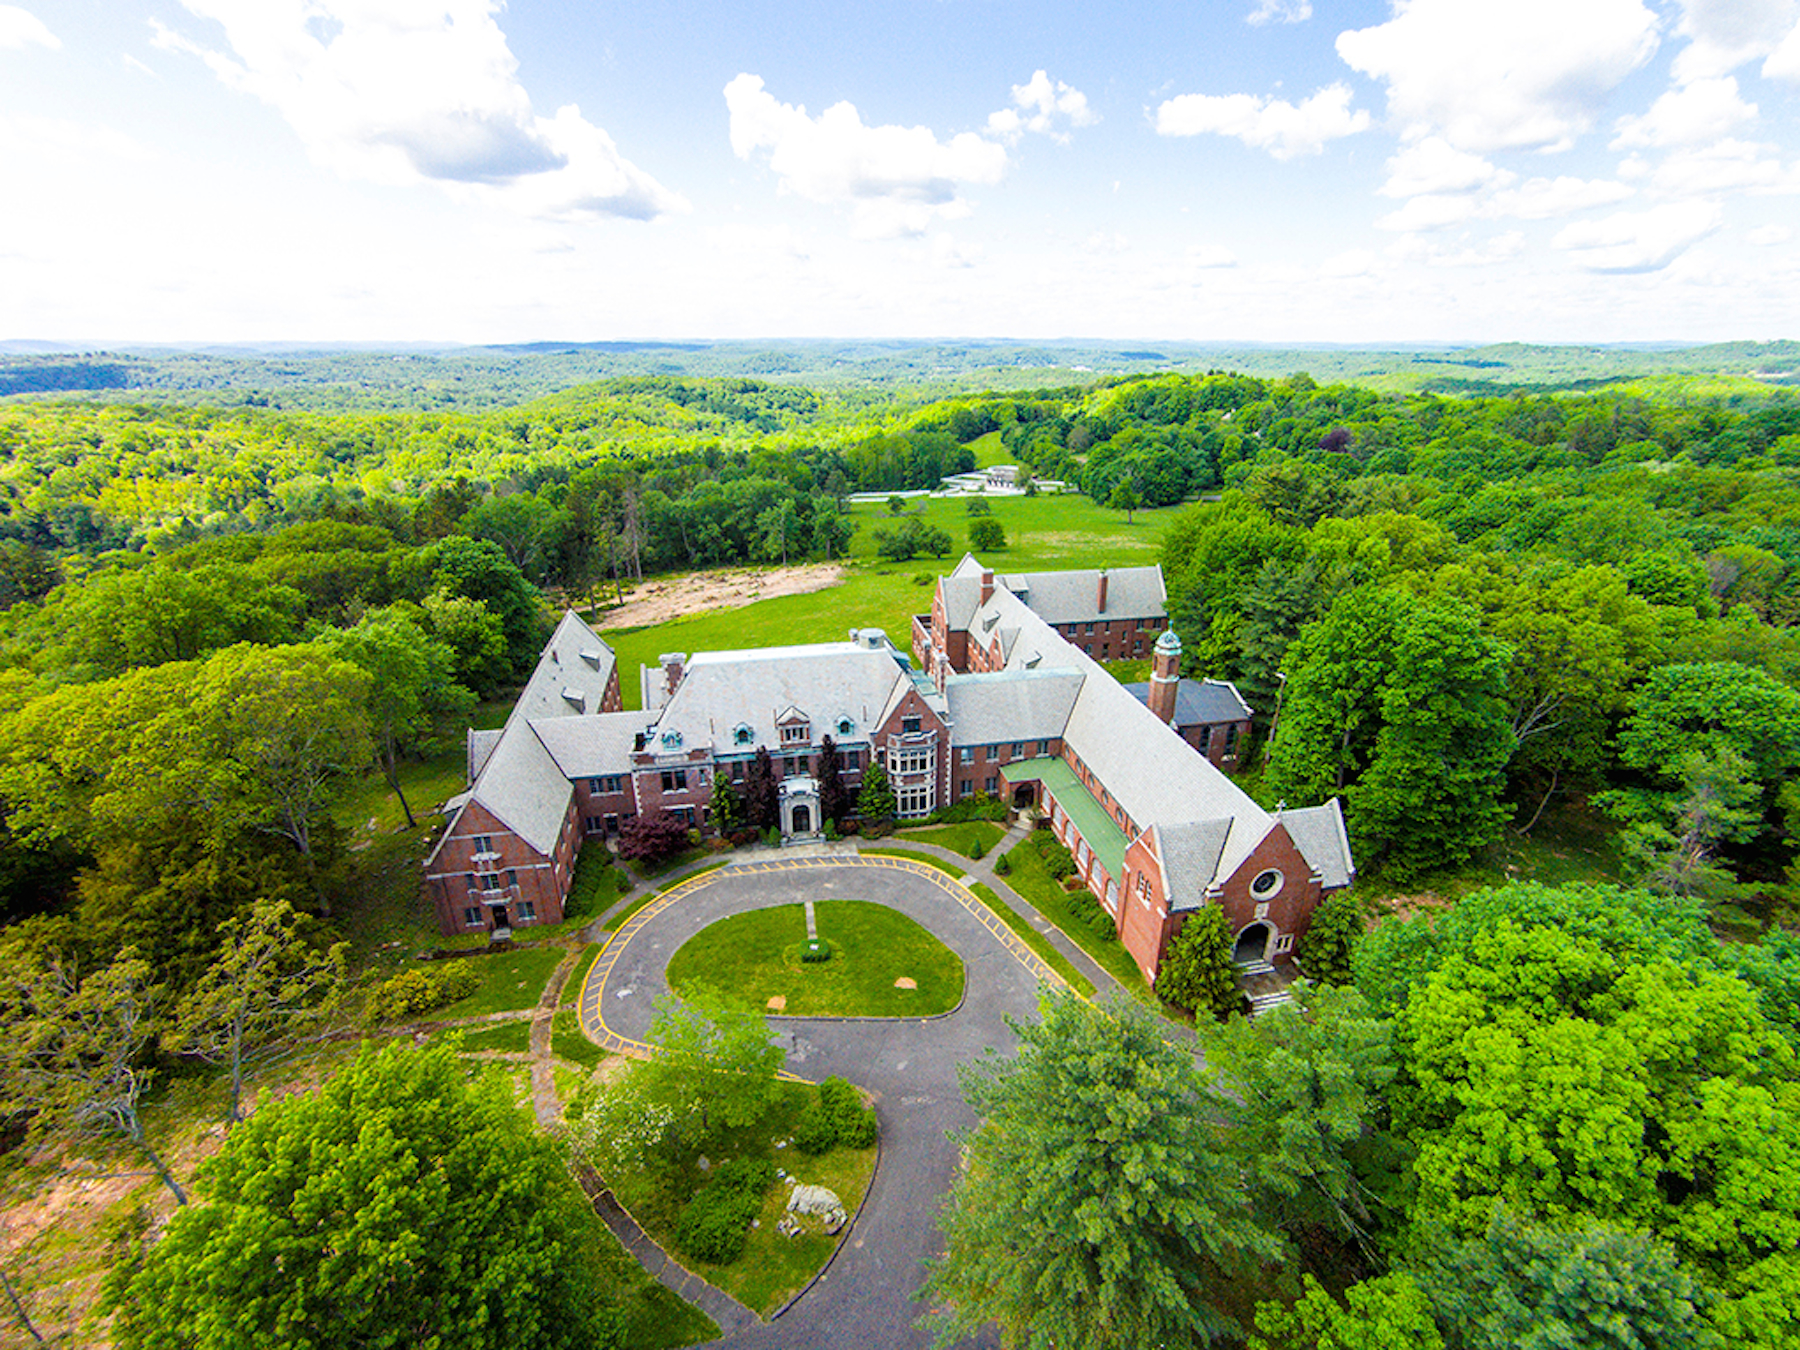 Land for Sale at Rose Hill- 96 Private Estate 773 Armonk Road Mount Kisco, New York 10549 United States